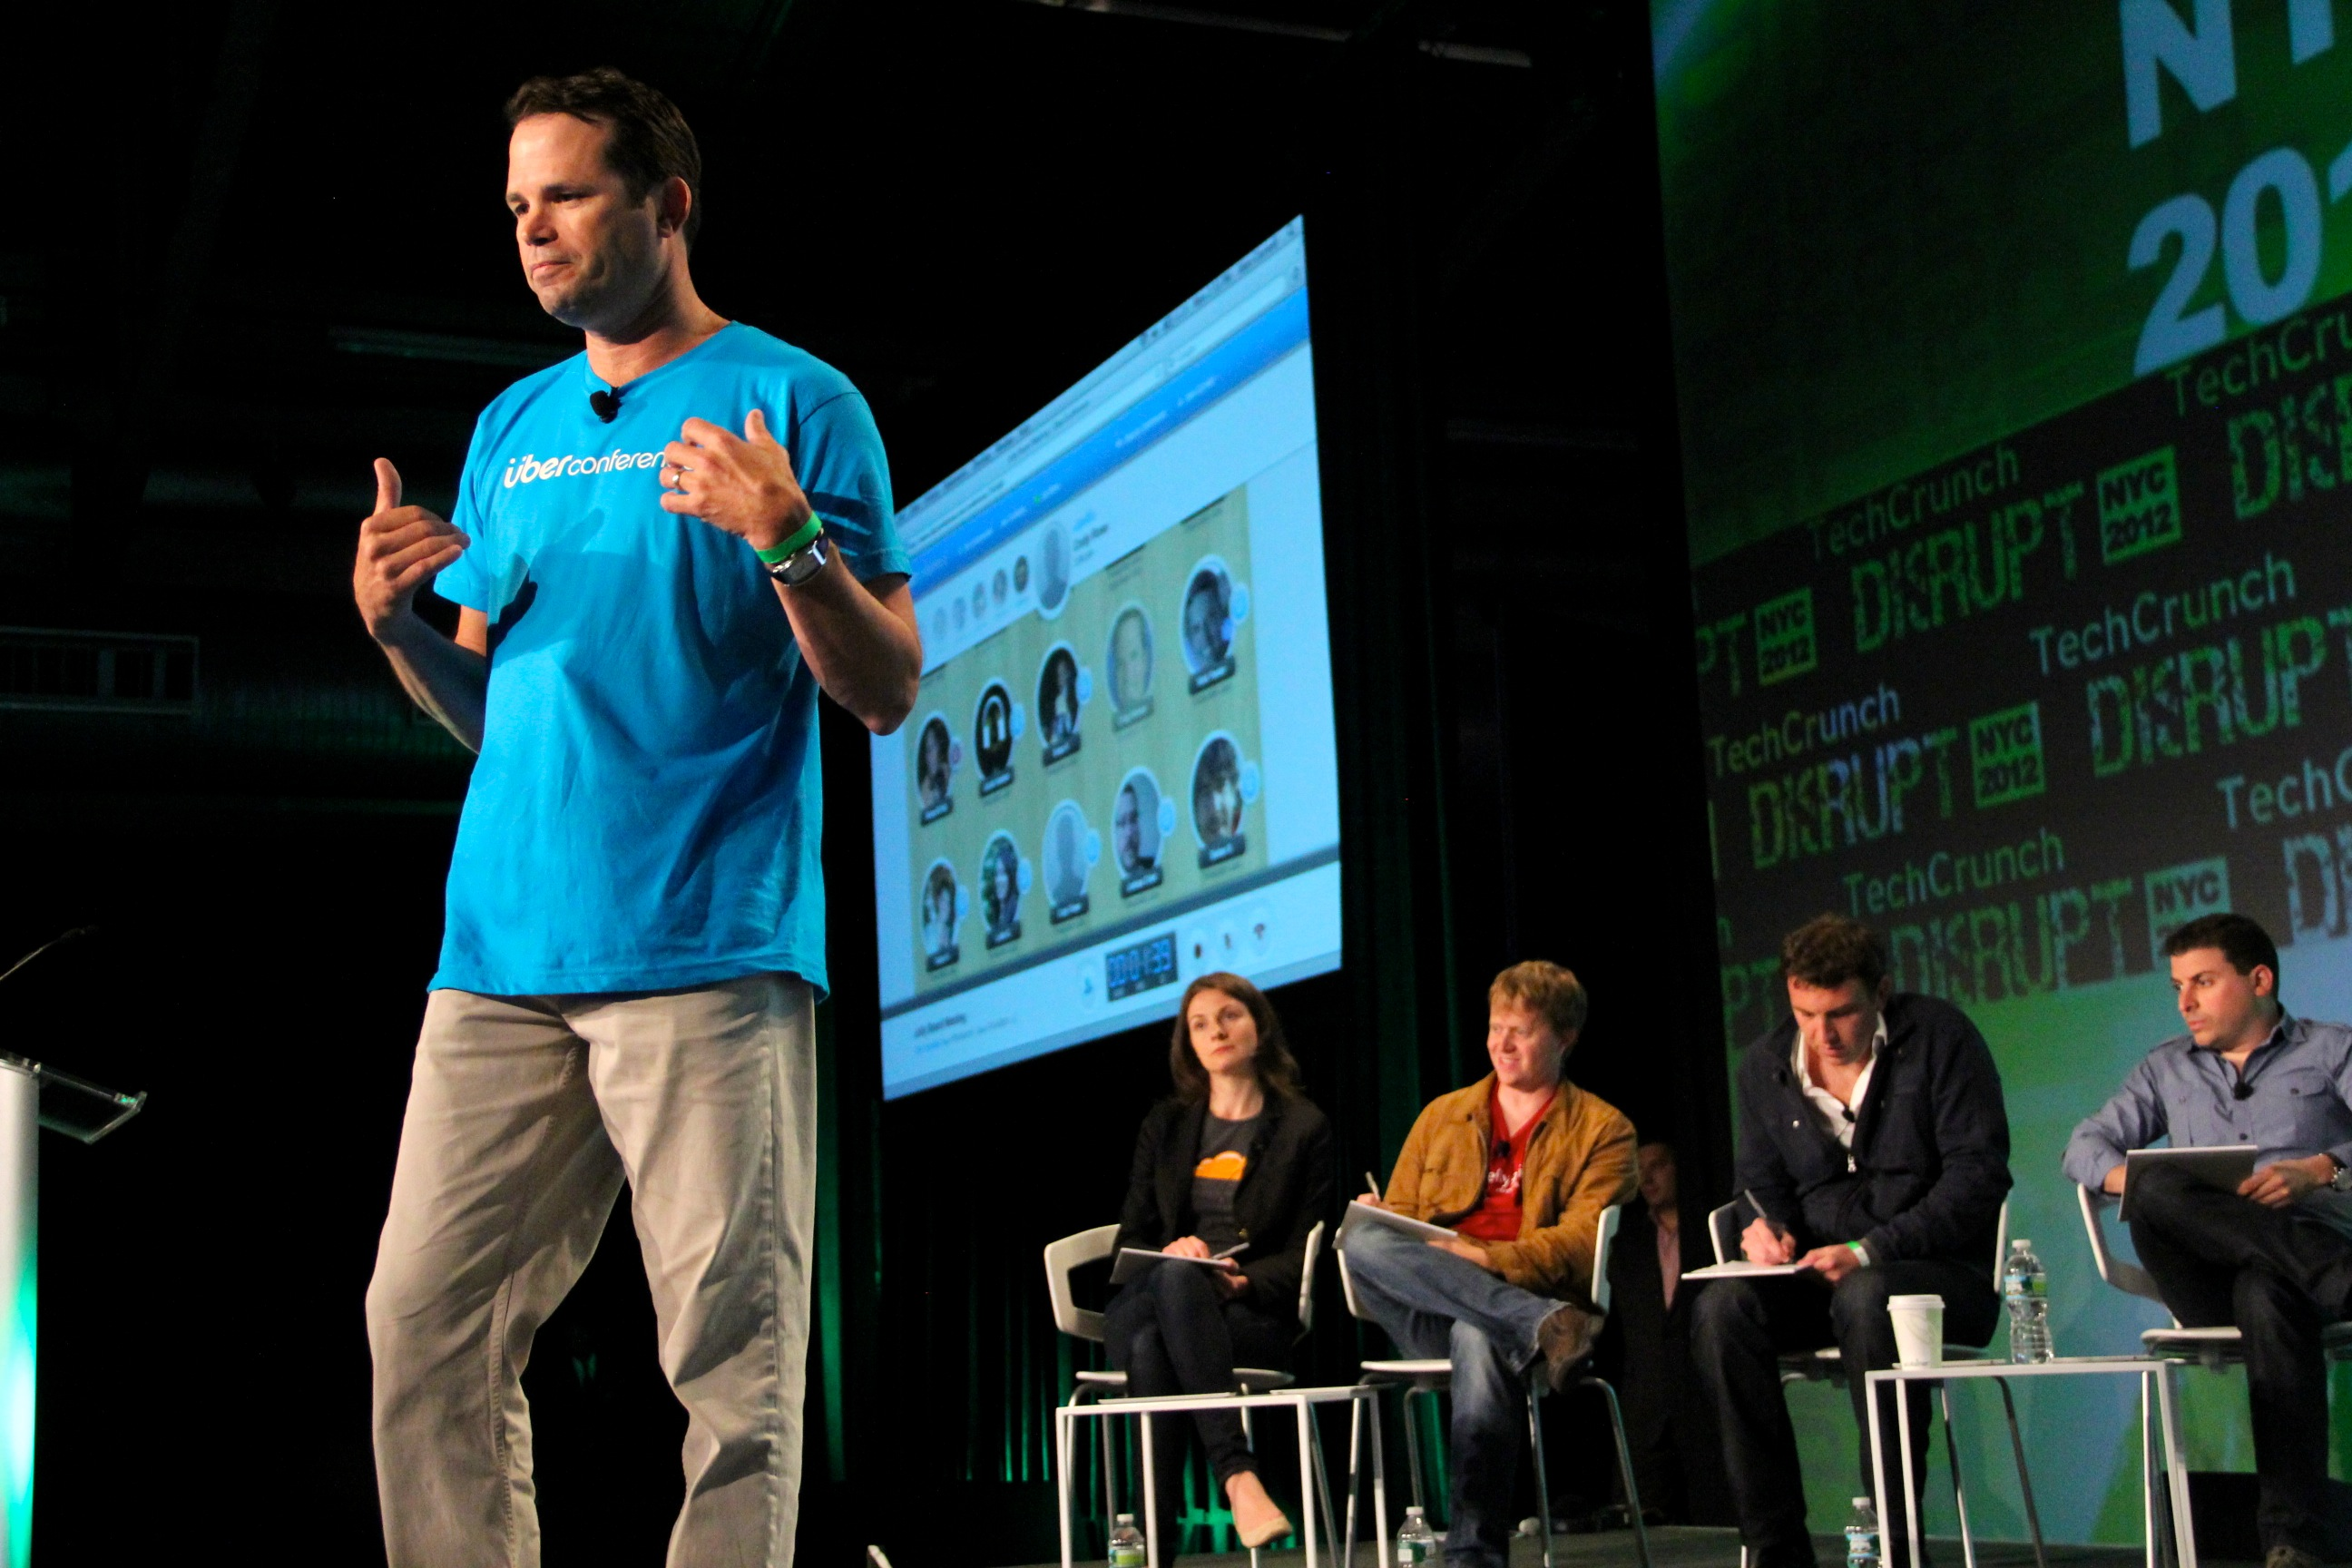 Techcrunch - conferencia